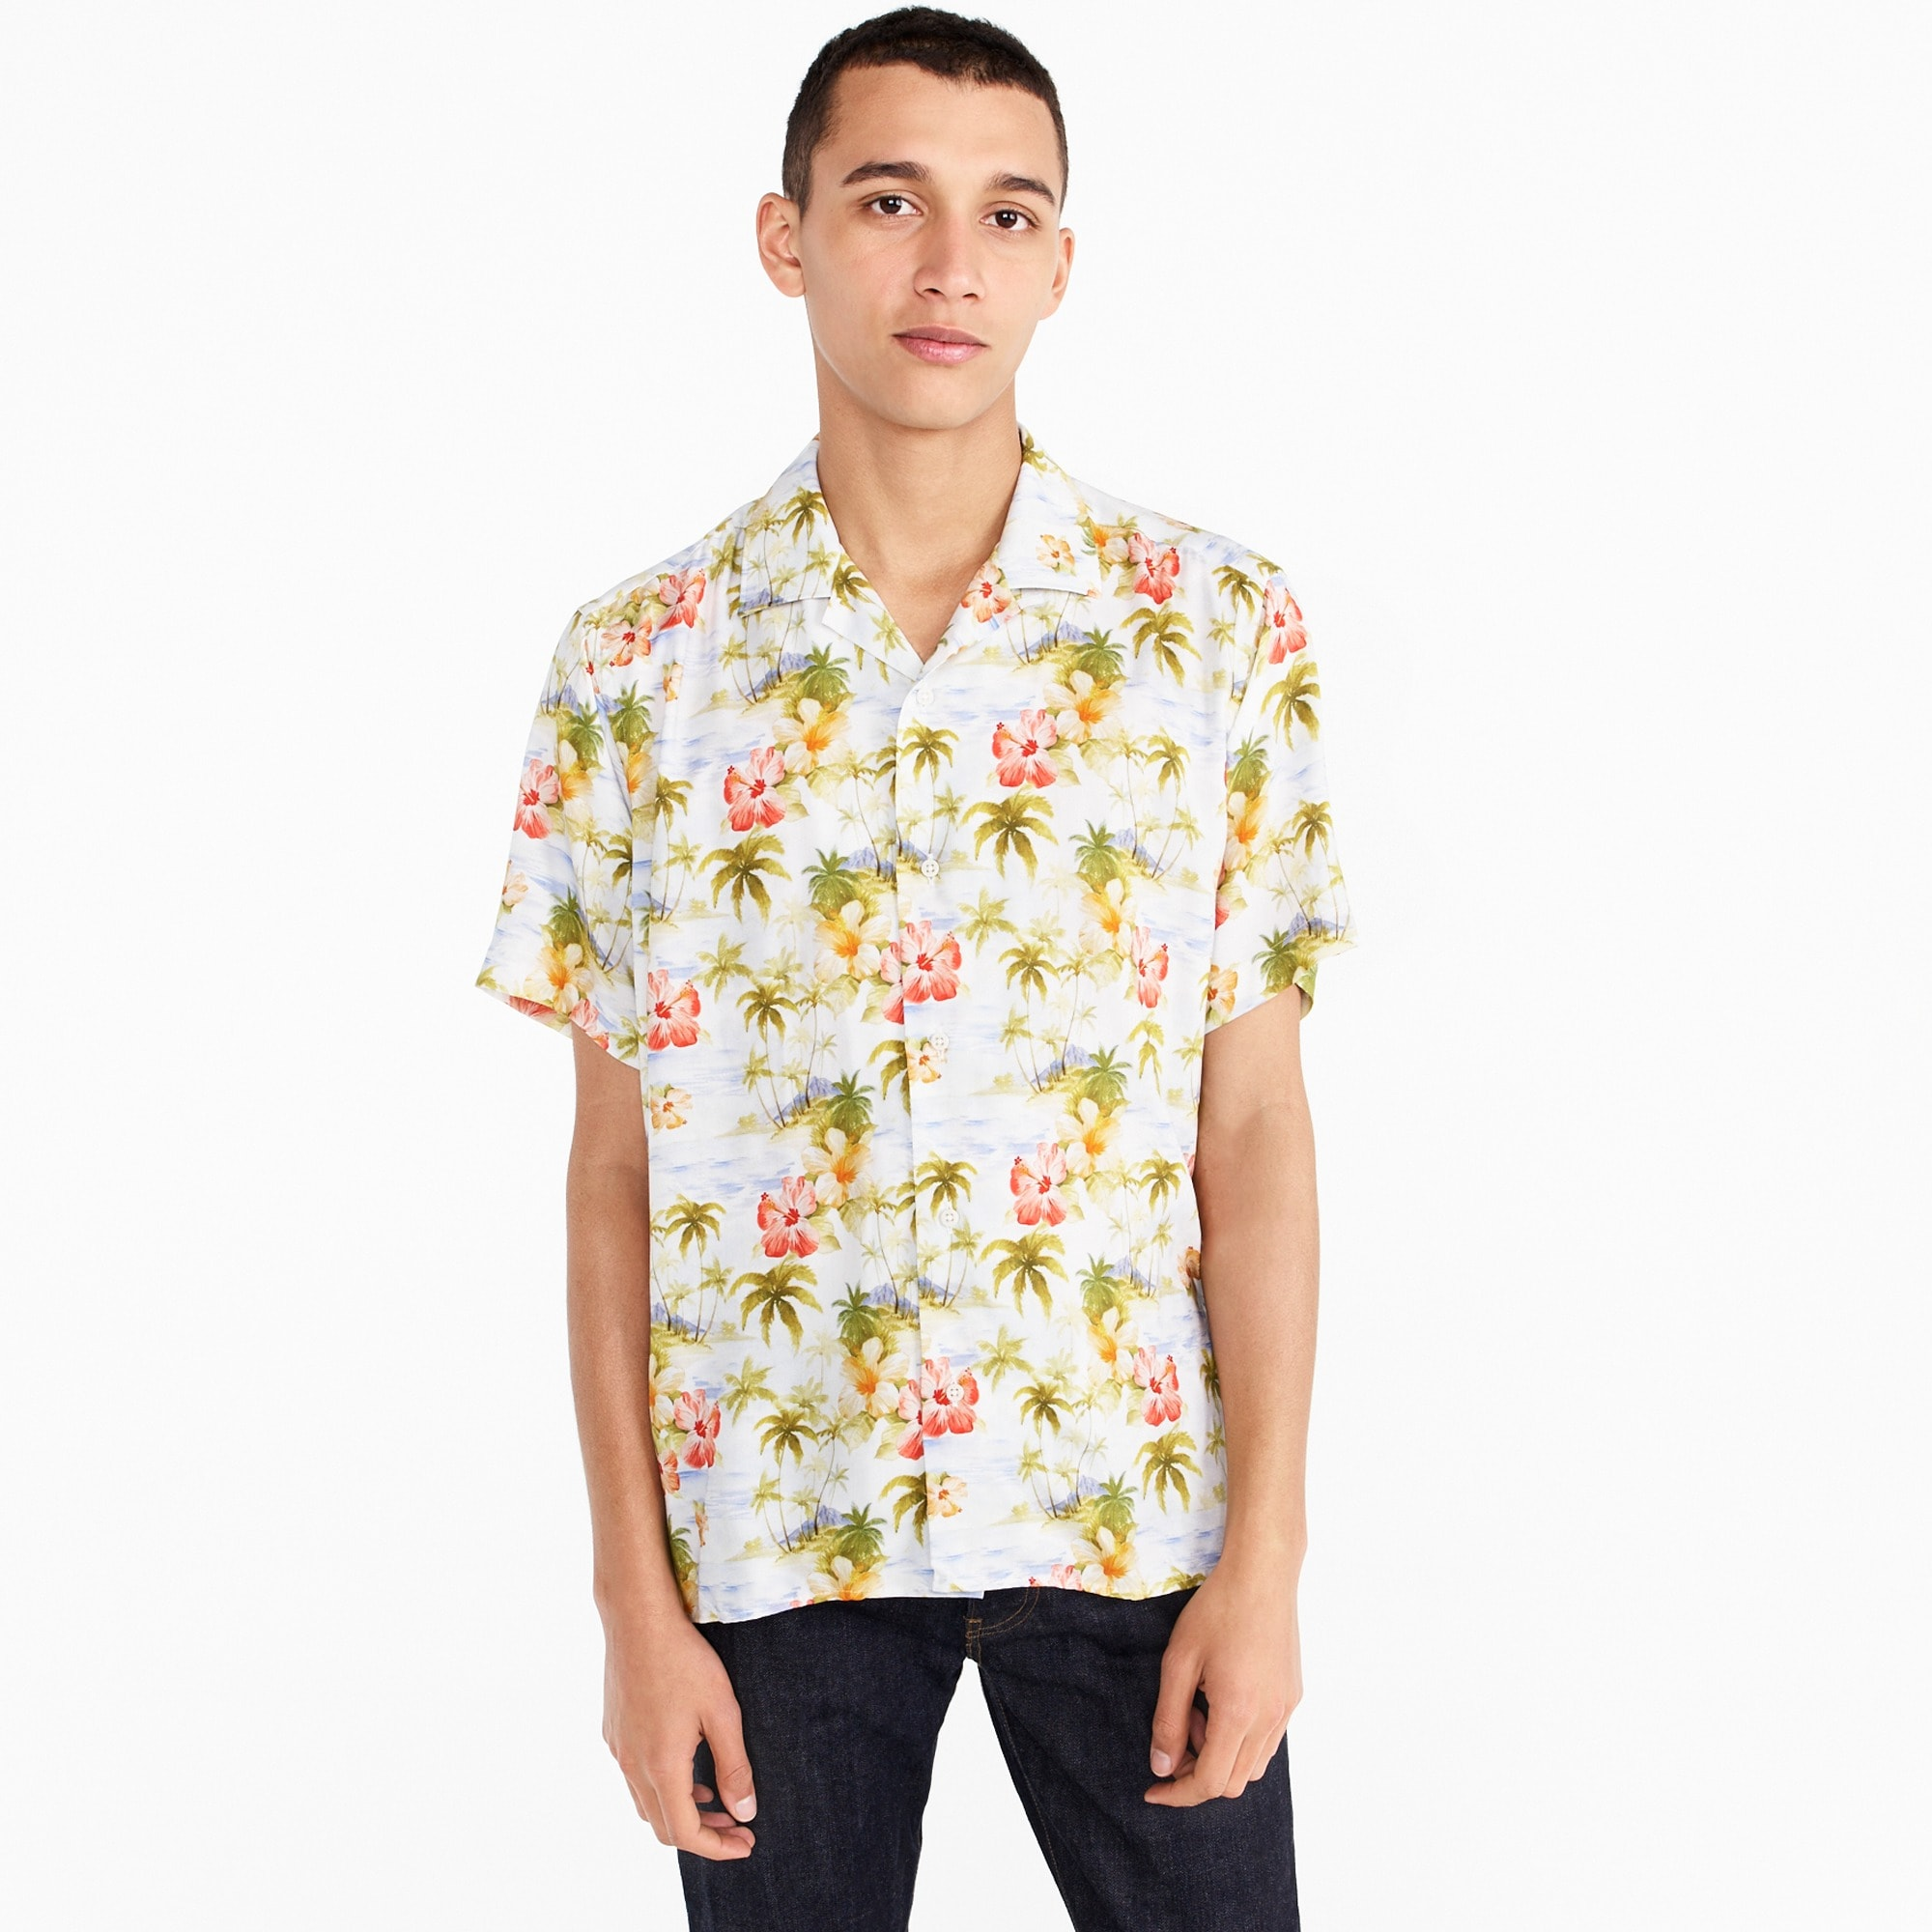 Gitman Vintage™ for J.Crew short-sleeve shirt in floral print men j.crew in good company c